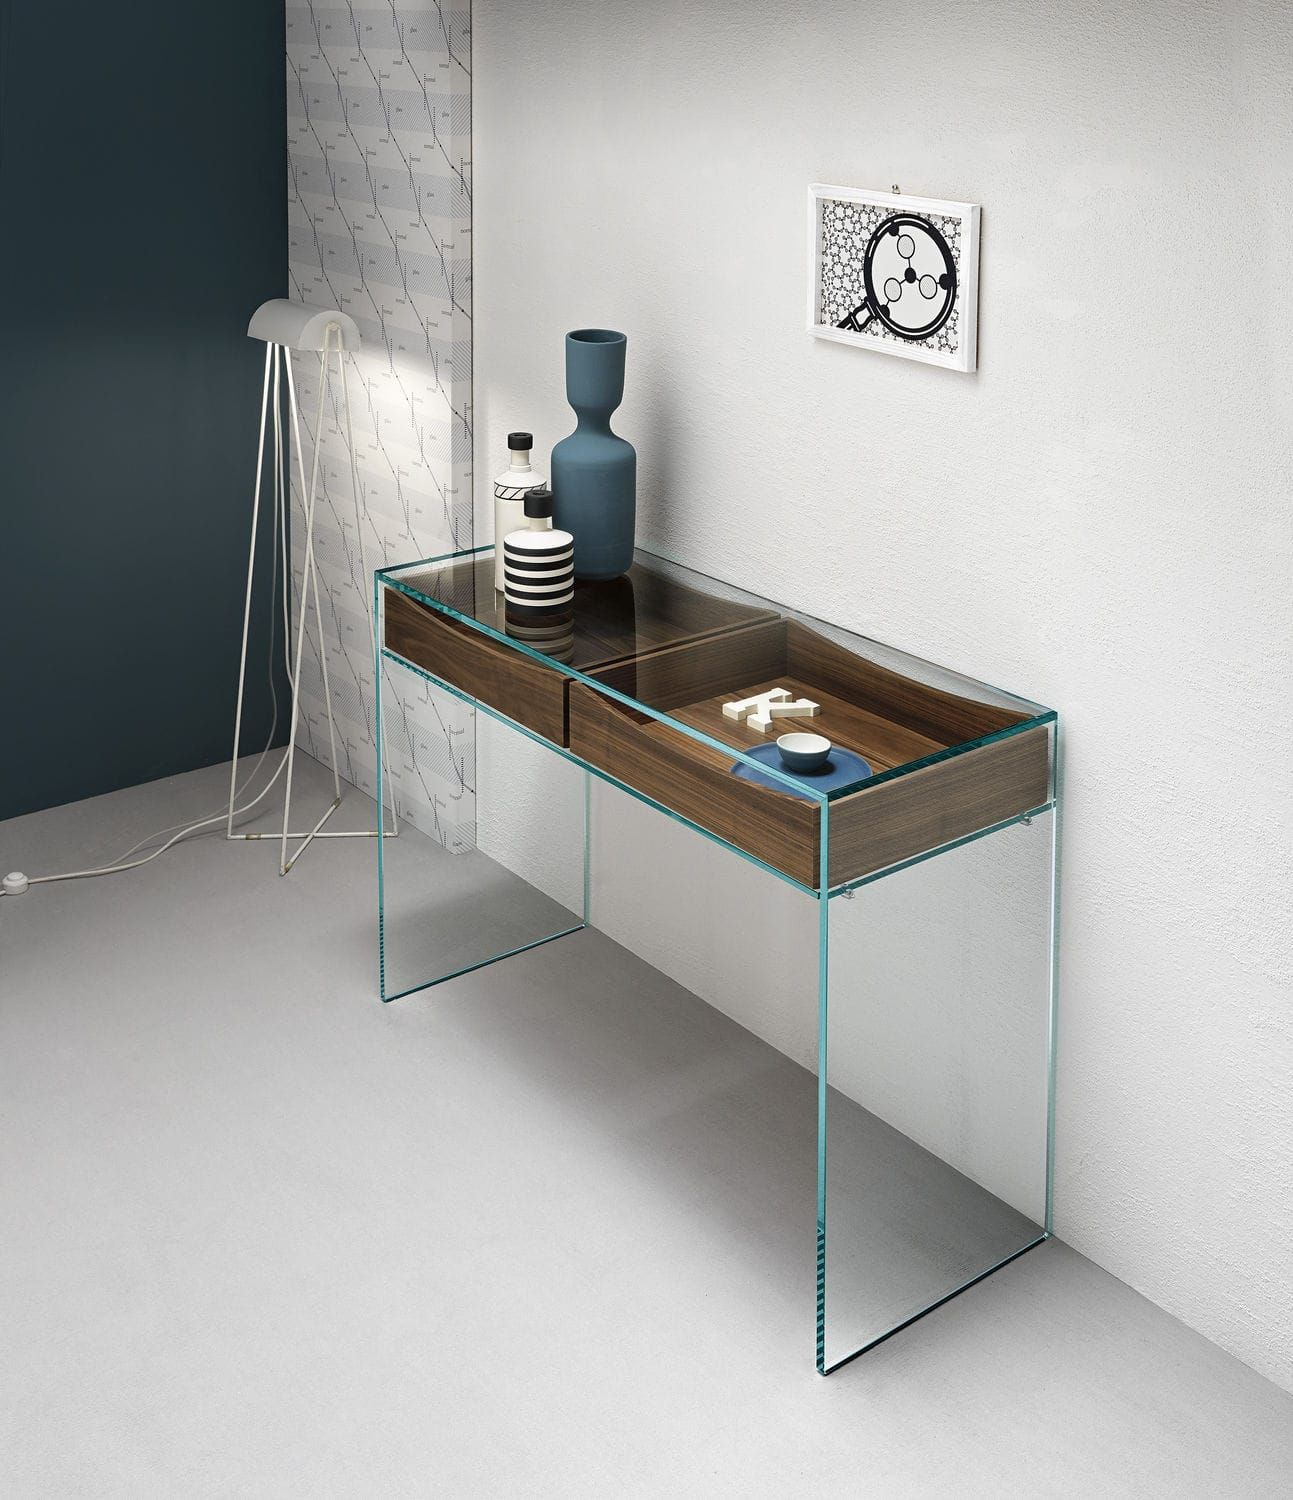 konsolentisch modern vorderseite aus glas rechteckig gulliver 2 by m u tonelli design. Black Bedroom Furniture Sets. Home Design Ideas